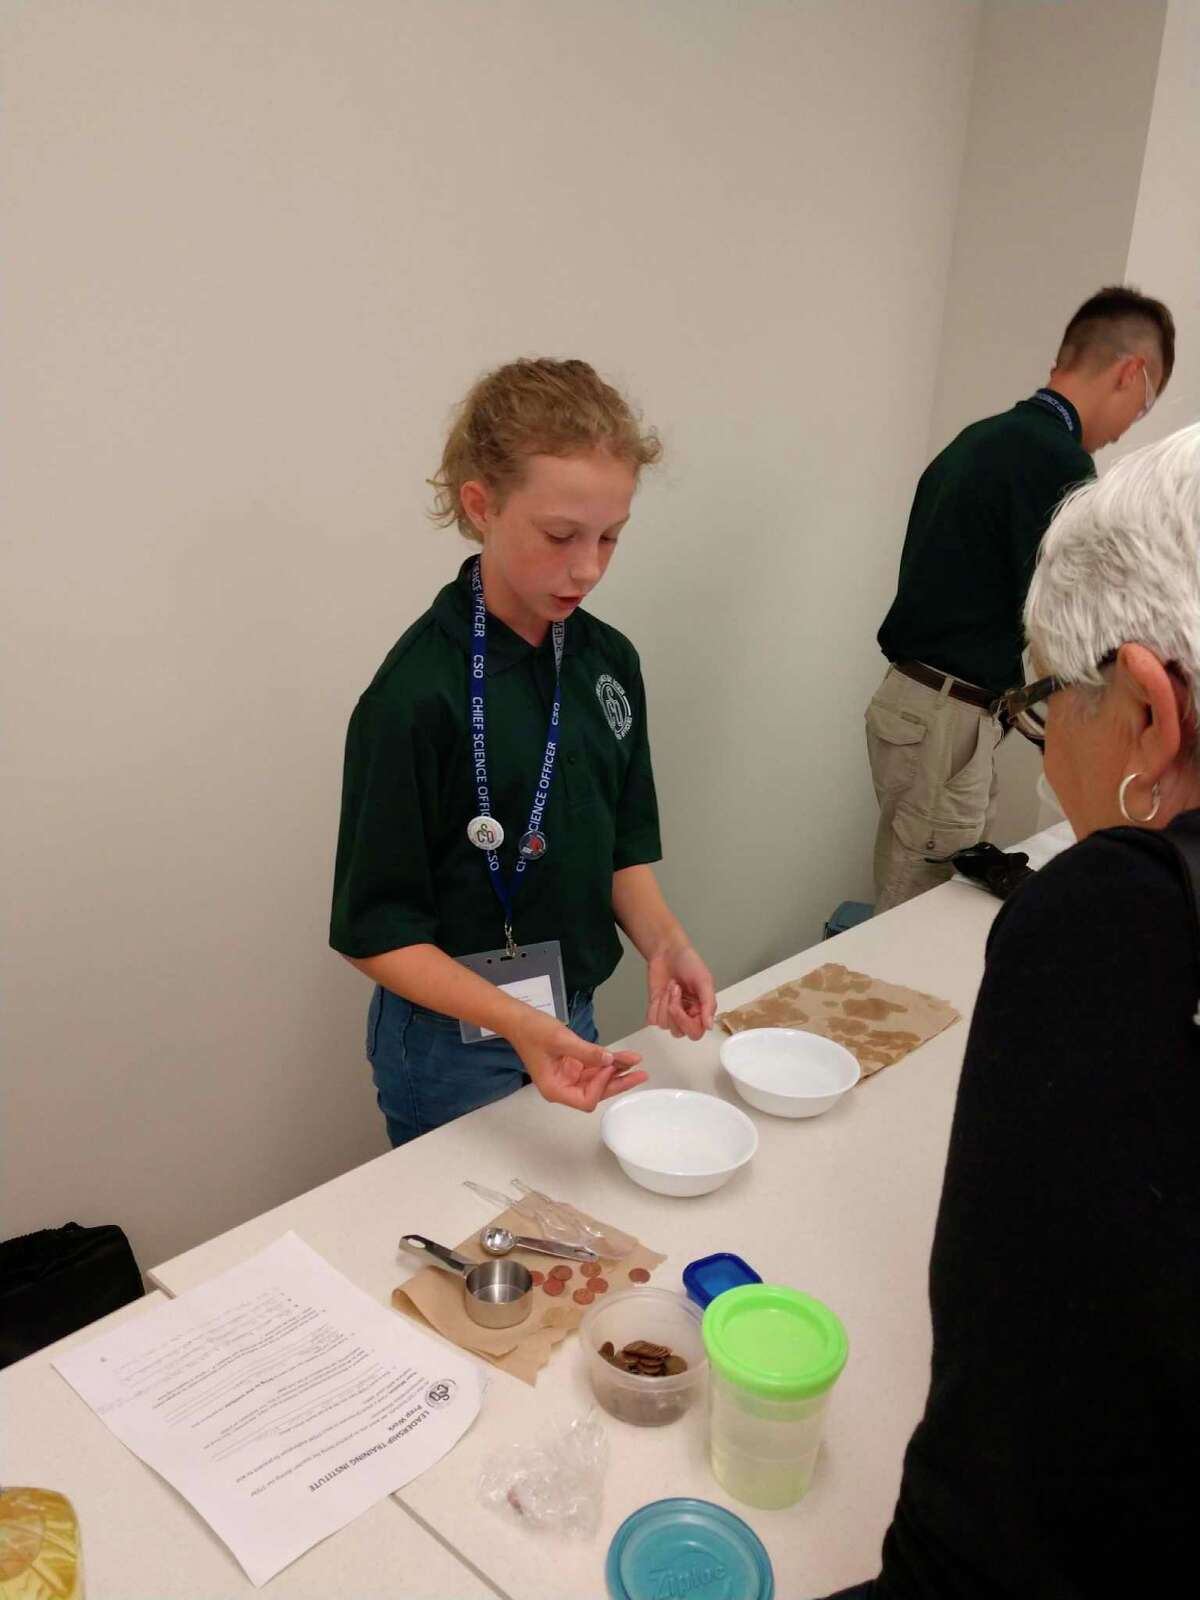 Norah Lacher is seen performing a scientific demonstration. (Photo provided)